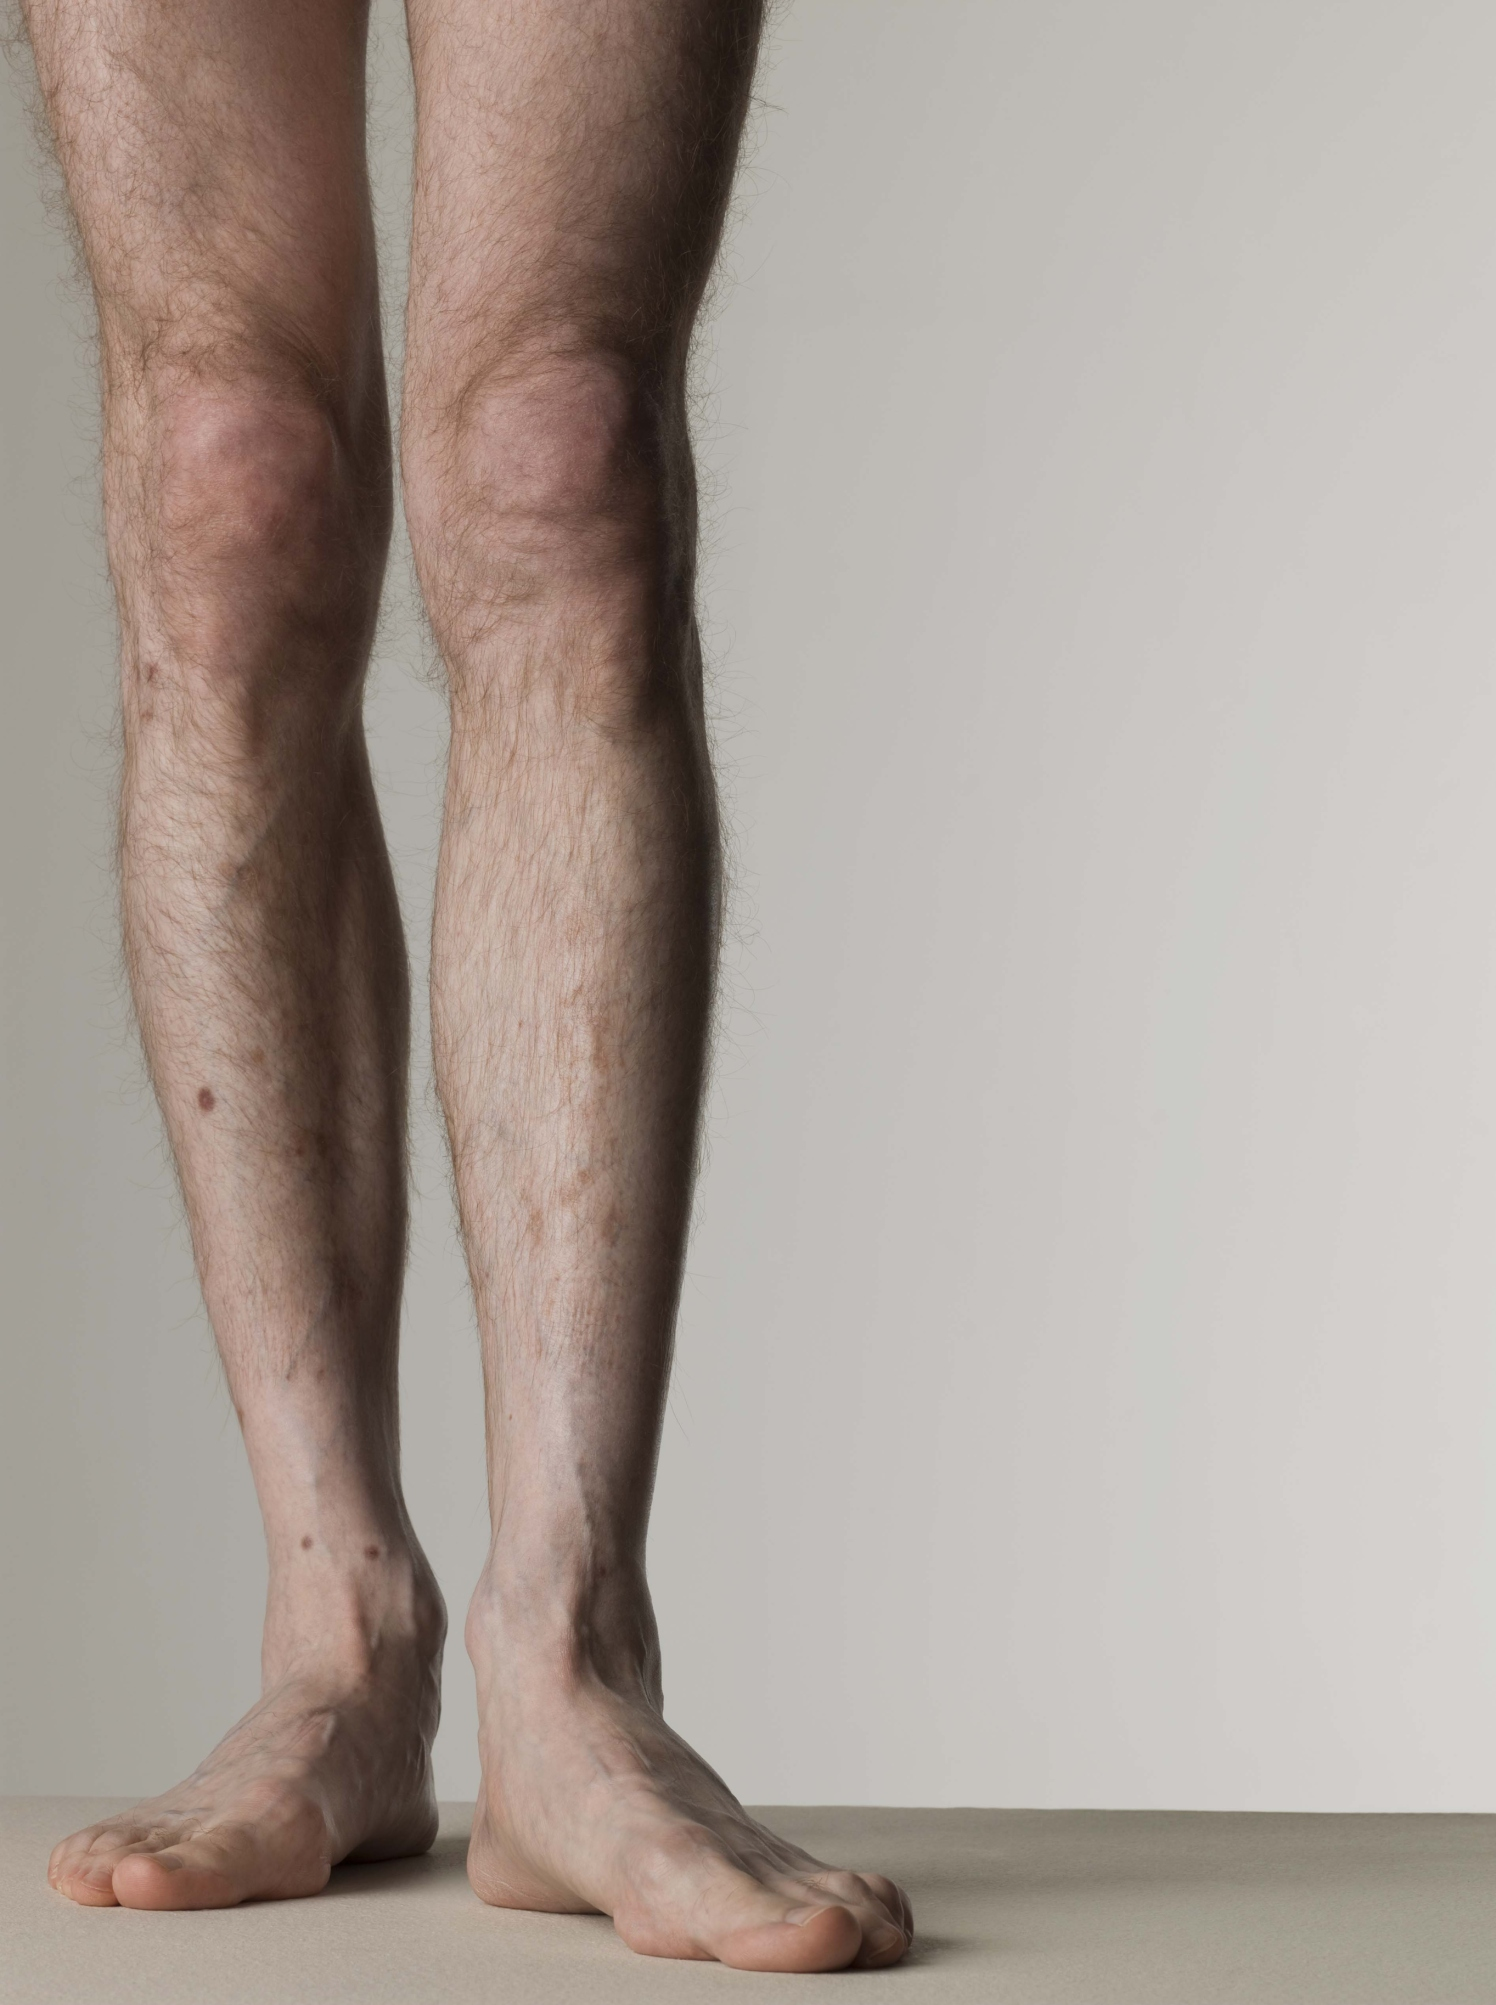 Genetics and overall health determine the prevalence of leg hair.